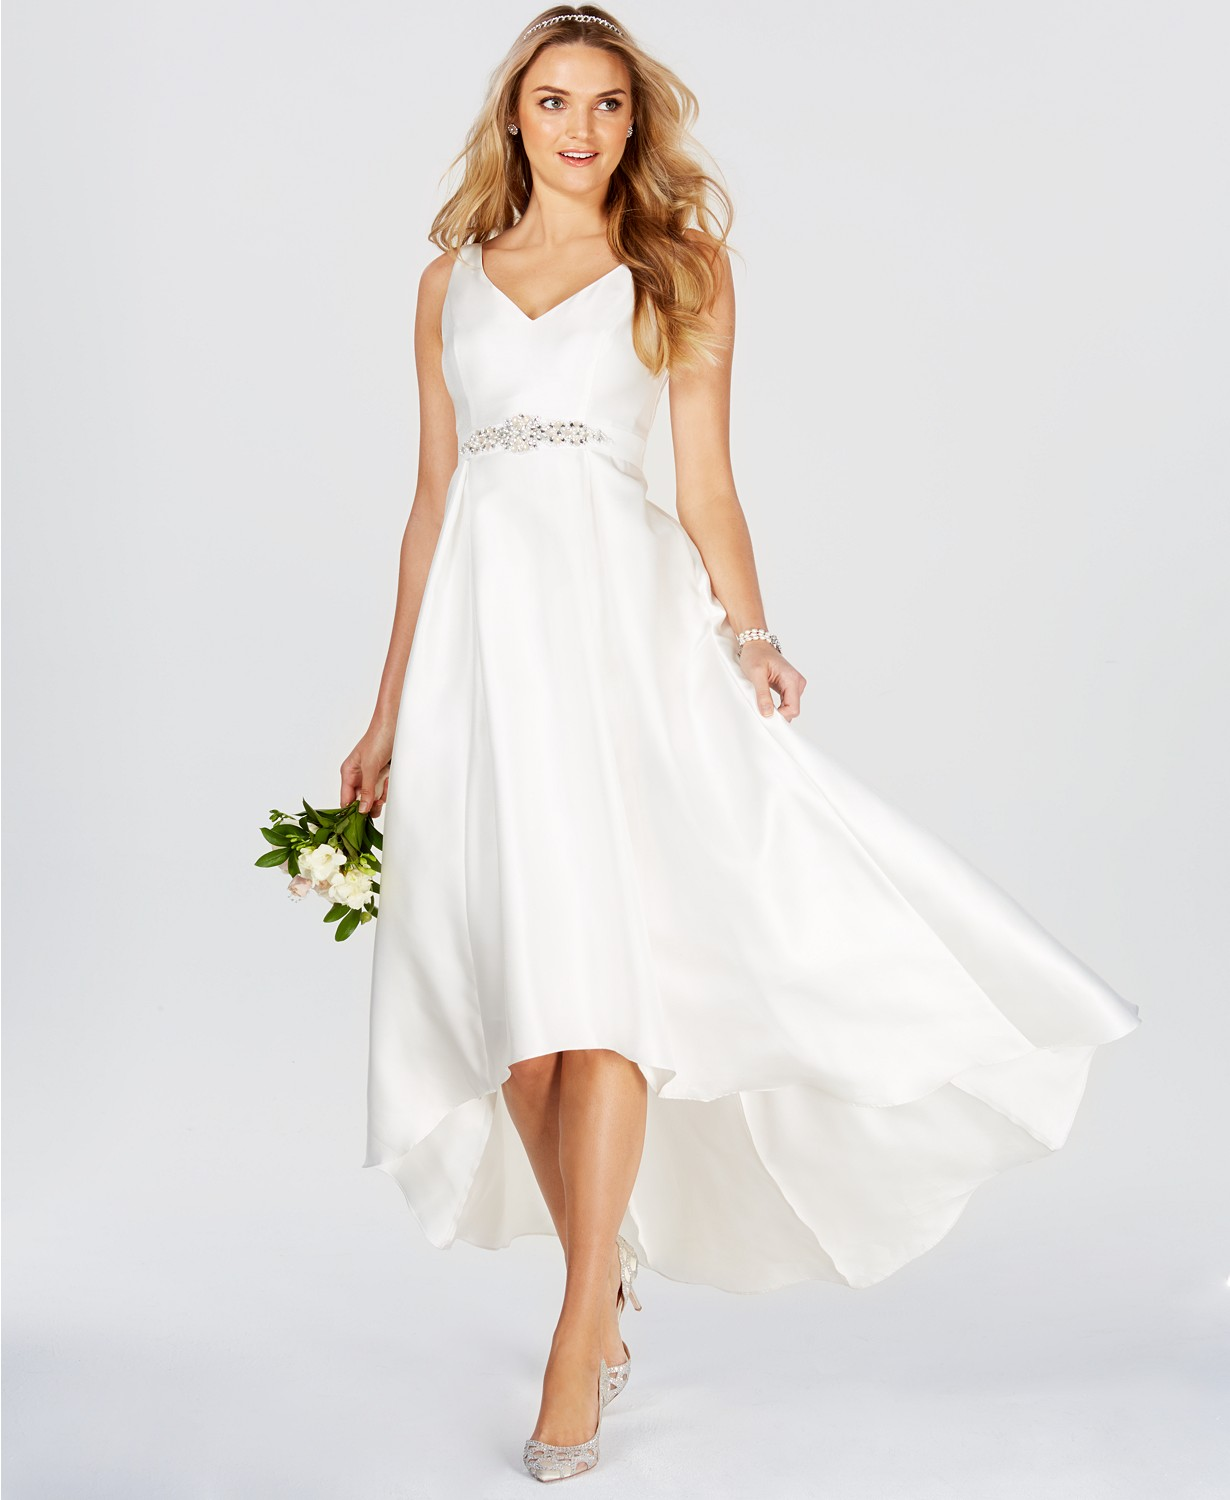 High-low Adrianna Papell dress